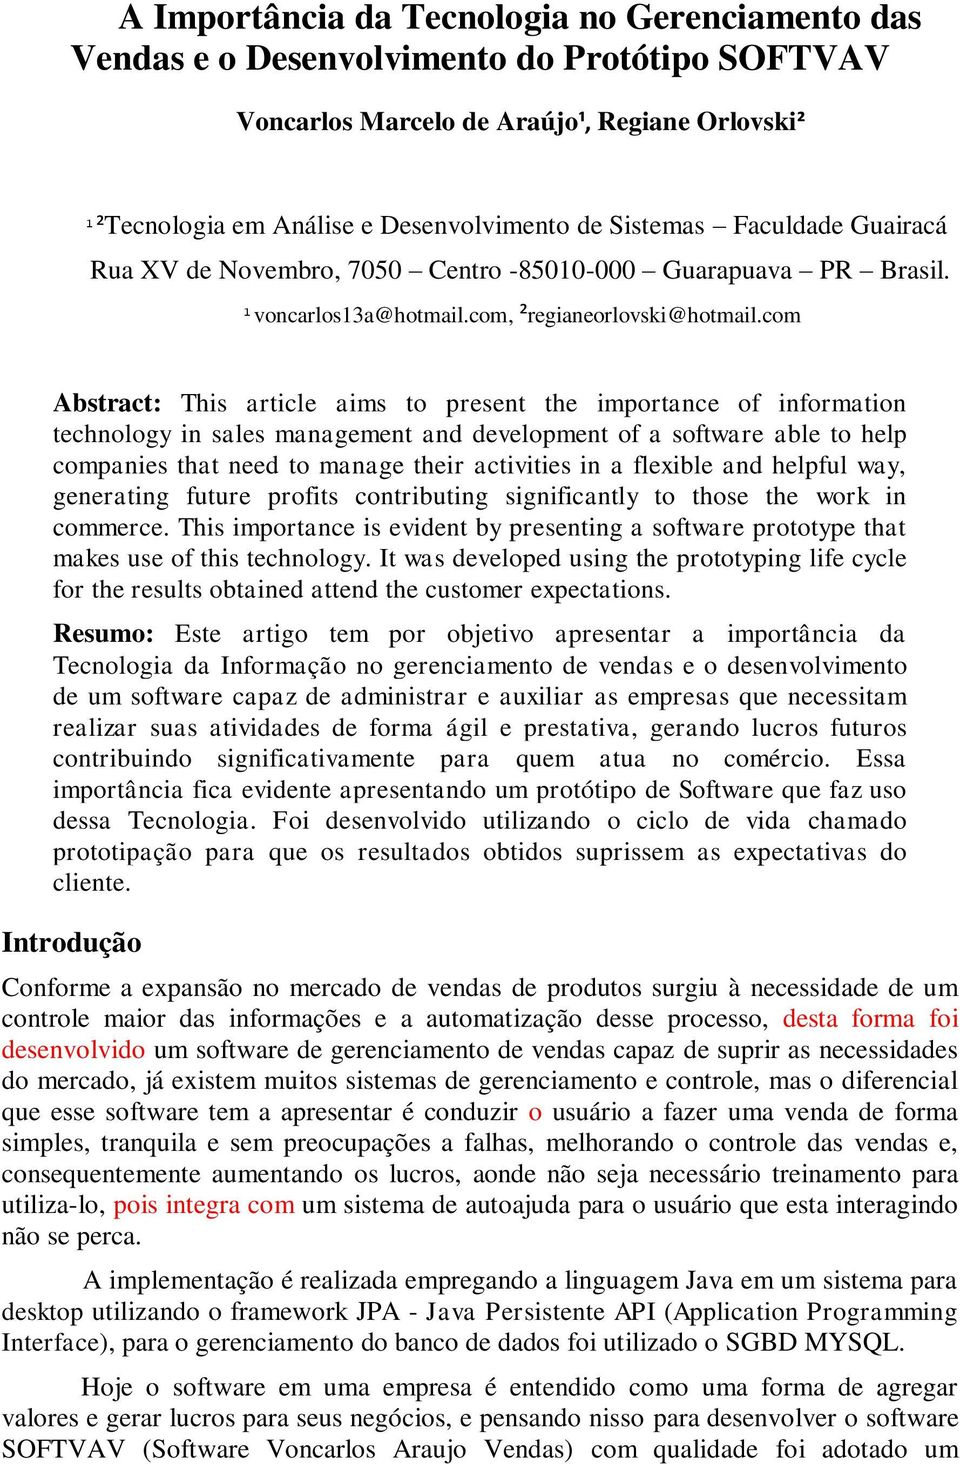 com Abstract: This article aims to present the importance of information technology in sales management and development of a software able to help companies that need to manage their activities in a